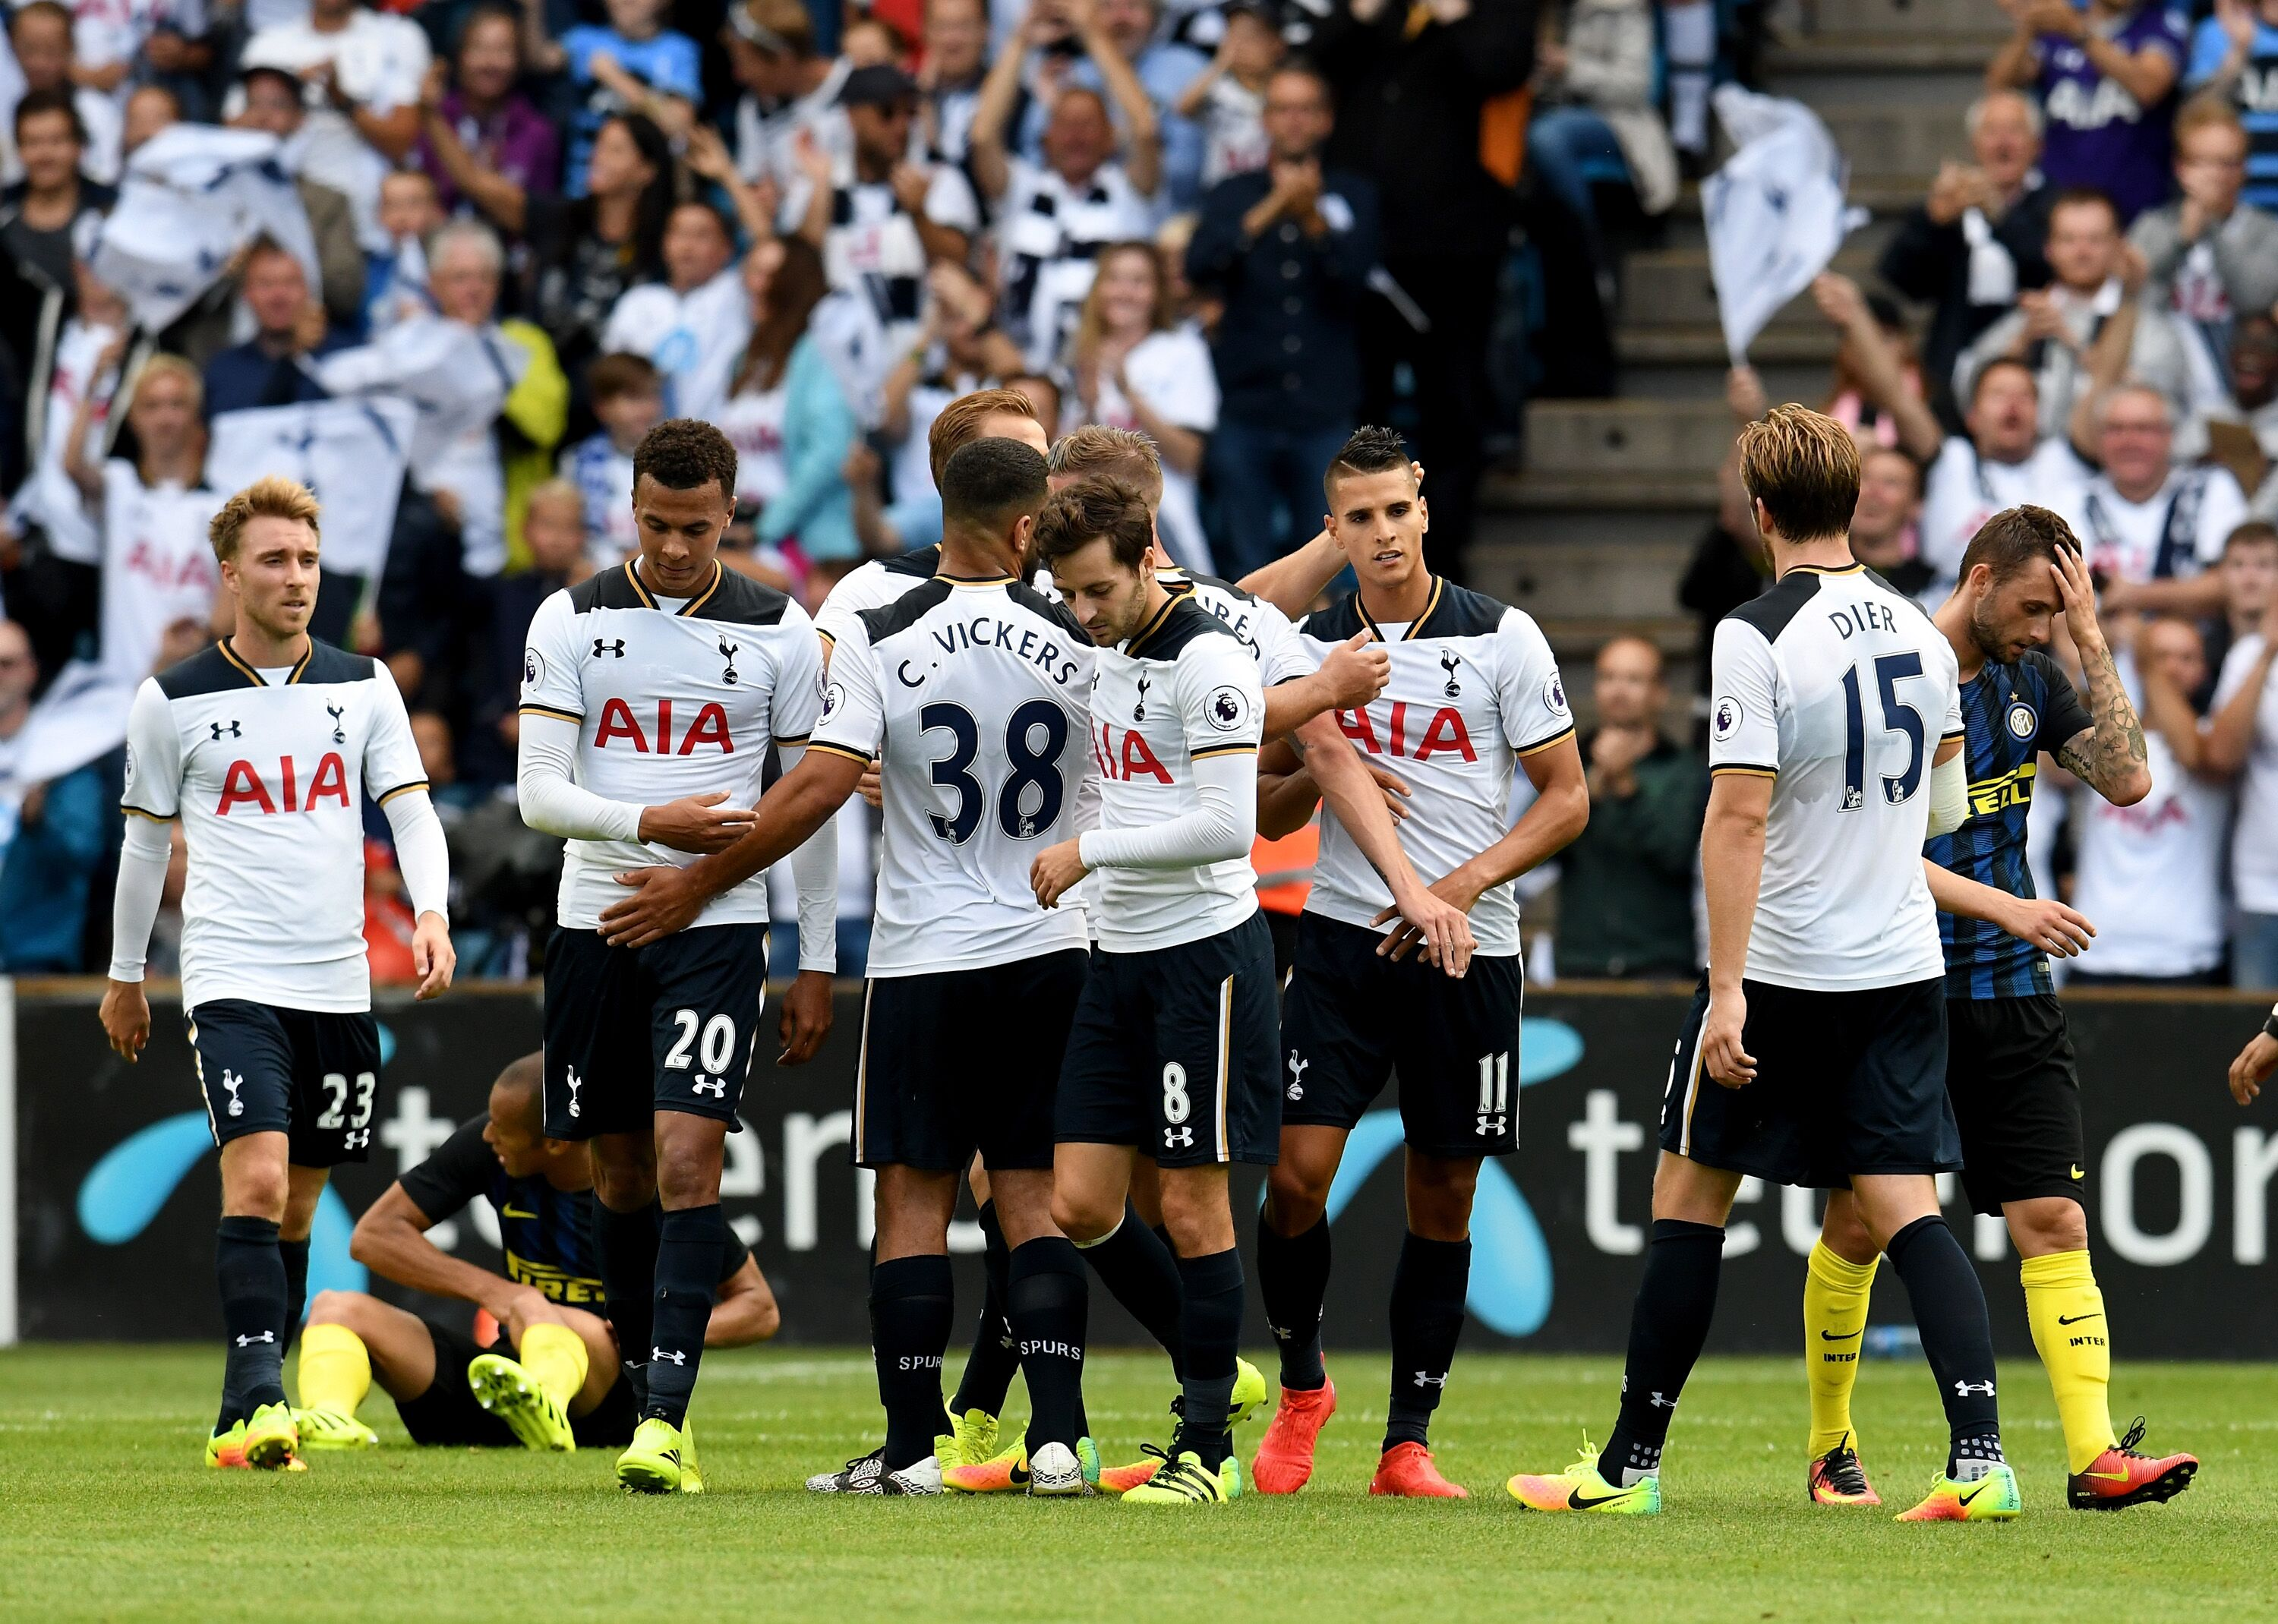 Manchester City Vs Chelsea Ao Vivo: Tottenham Vs. Crystal Palace: 5 Key Matchups To Determine